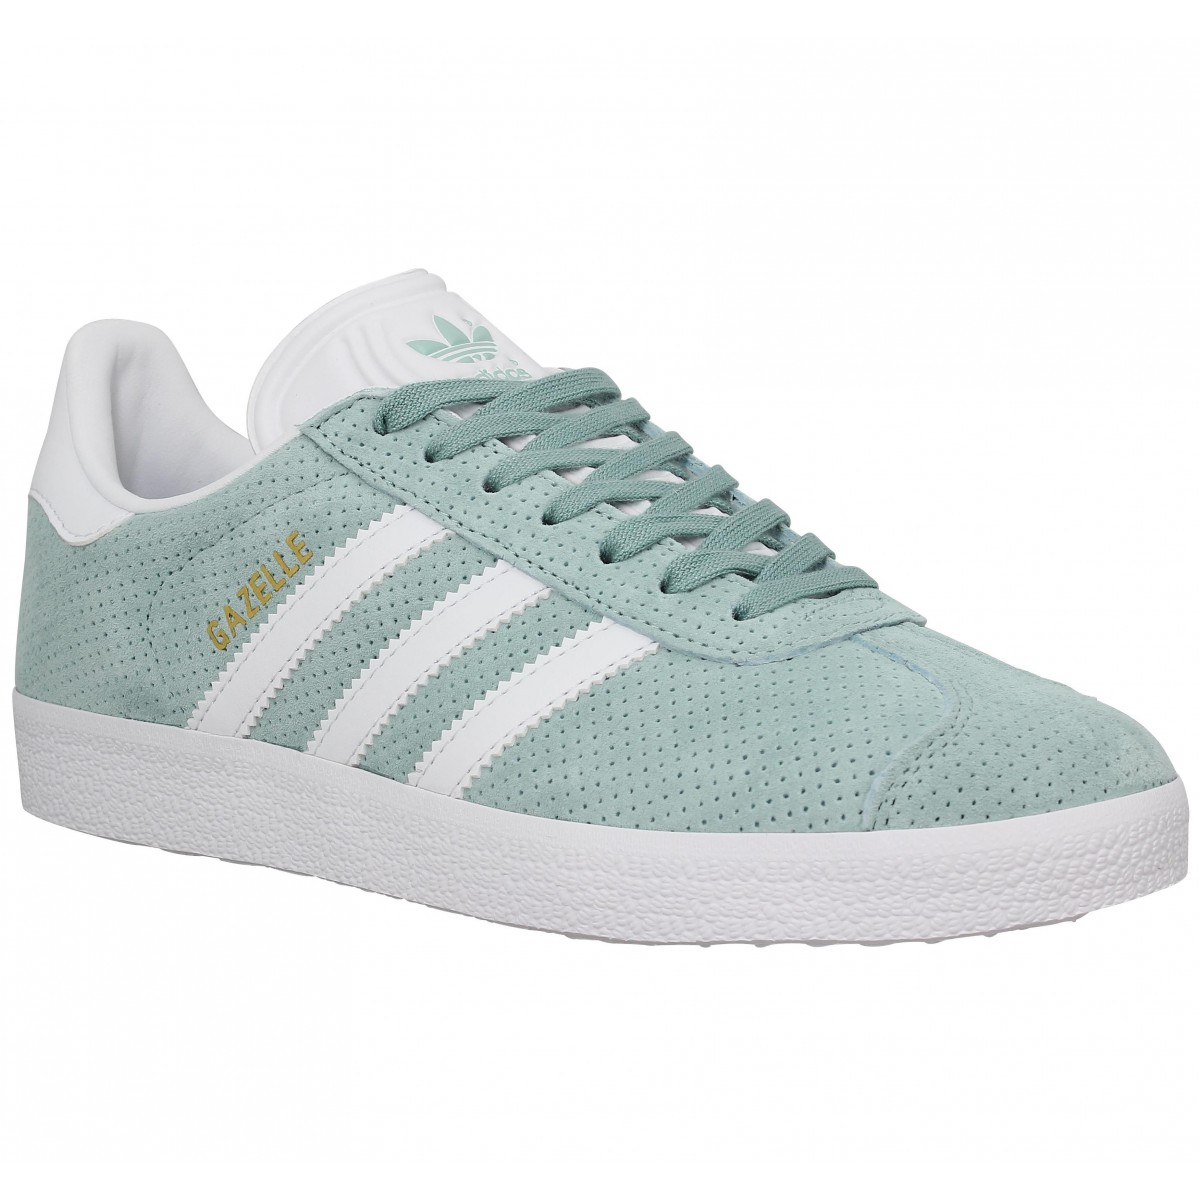 soldes adidas gazelle velours perfo femme vert femme fanny chaussures. Black Bedroom Furniture Sets. Home Design Ideas